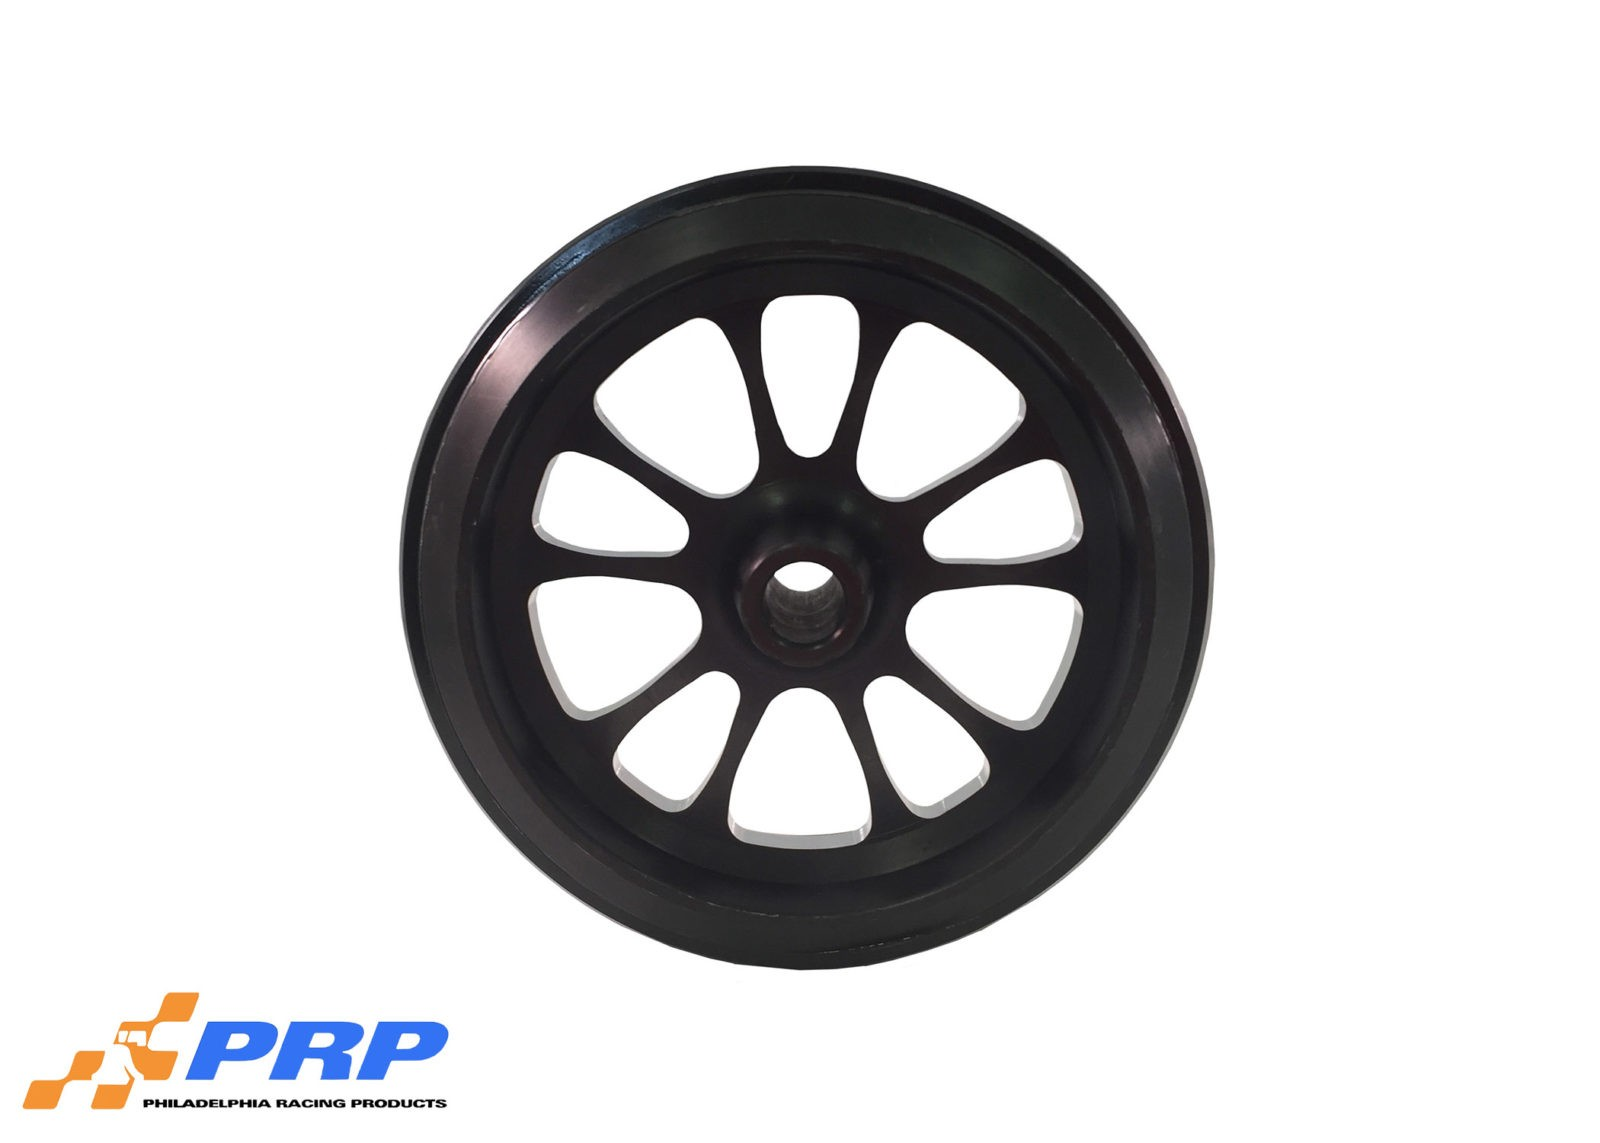 Black Anodized 10 Spoke Style made by PRP Racing Products